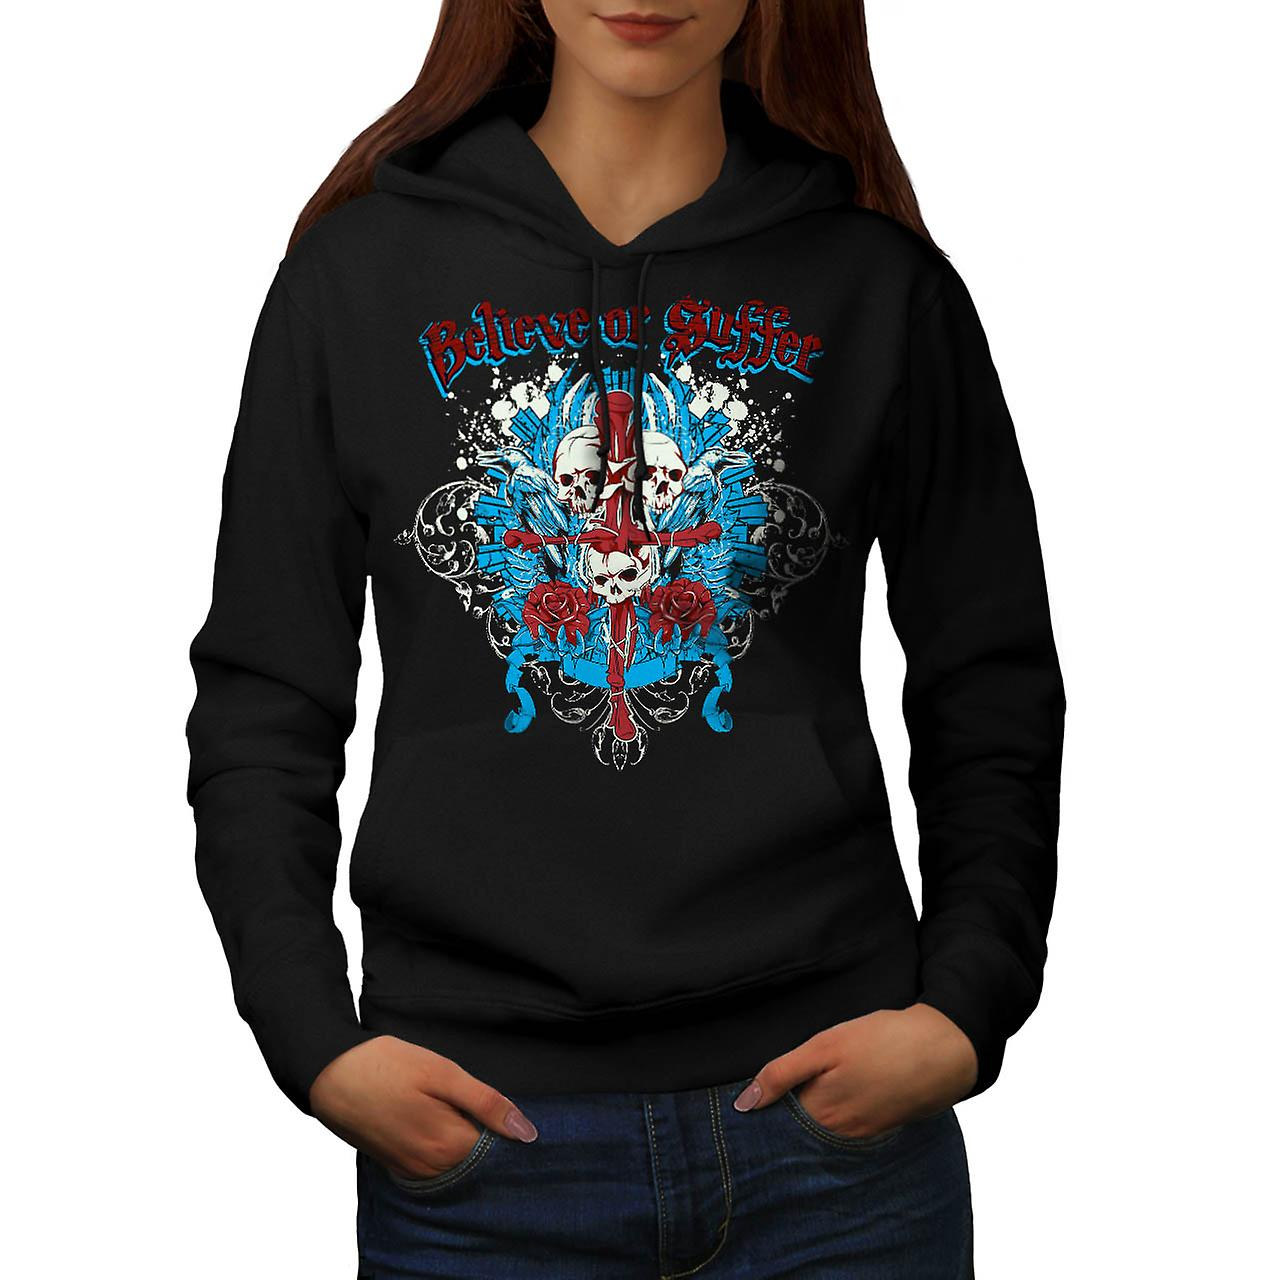 Believe Suffer Skull Cross Bones Women Black Hoodie | Wellcoda